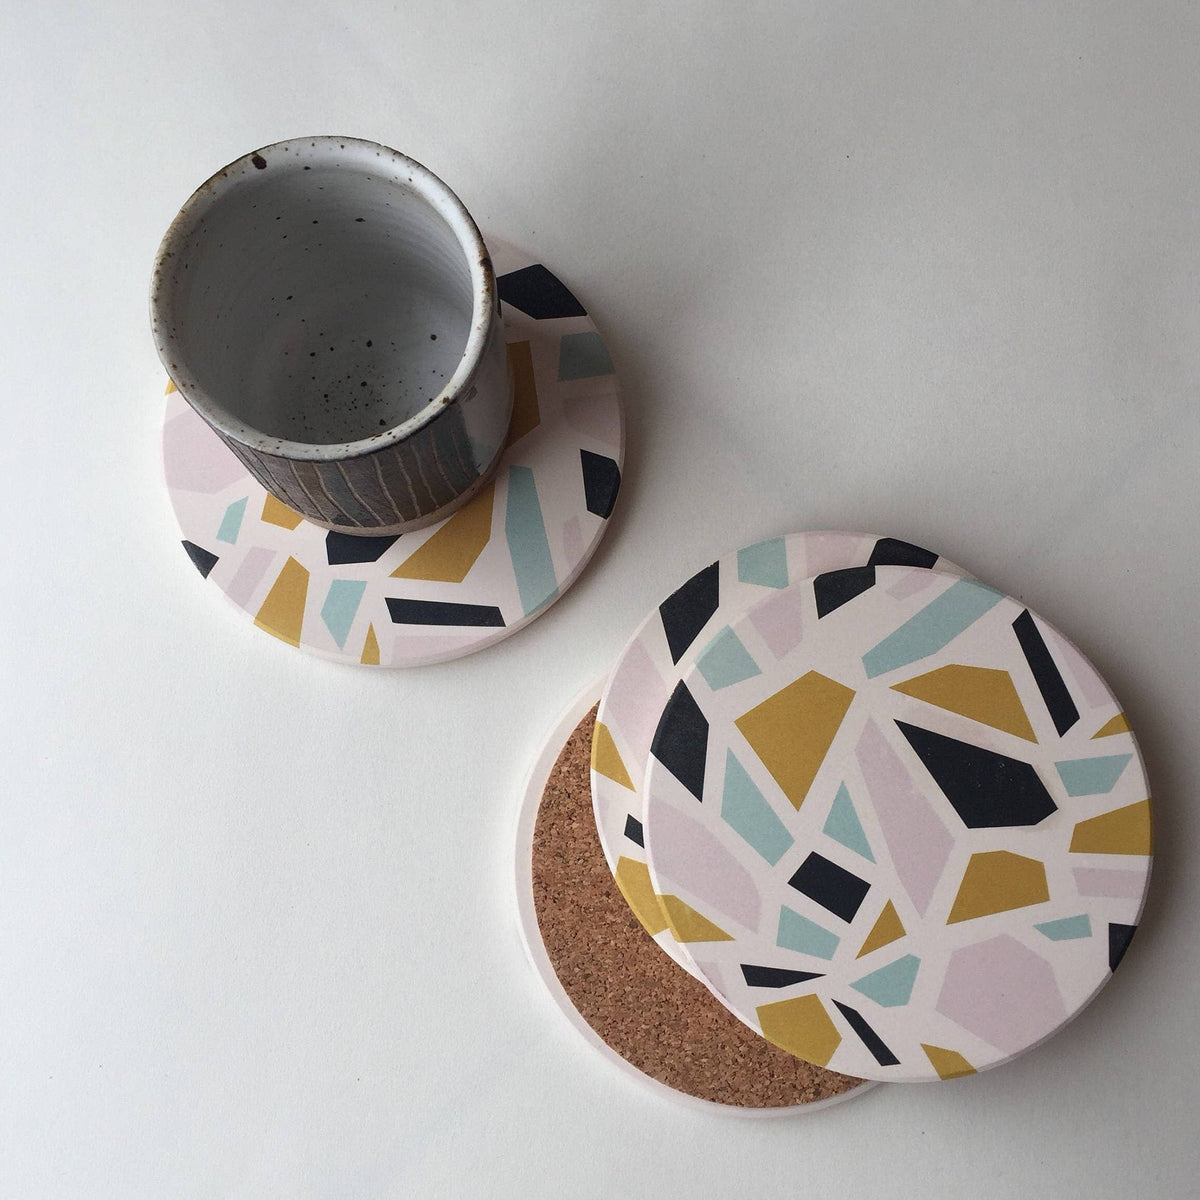 TERRAZZO Absorbent Stone Coasters set of 4